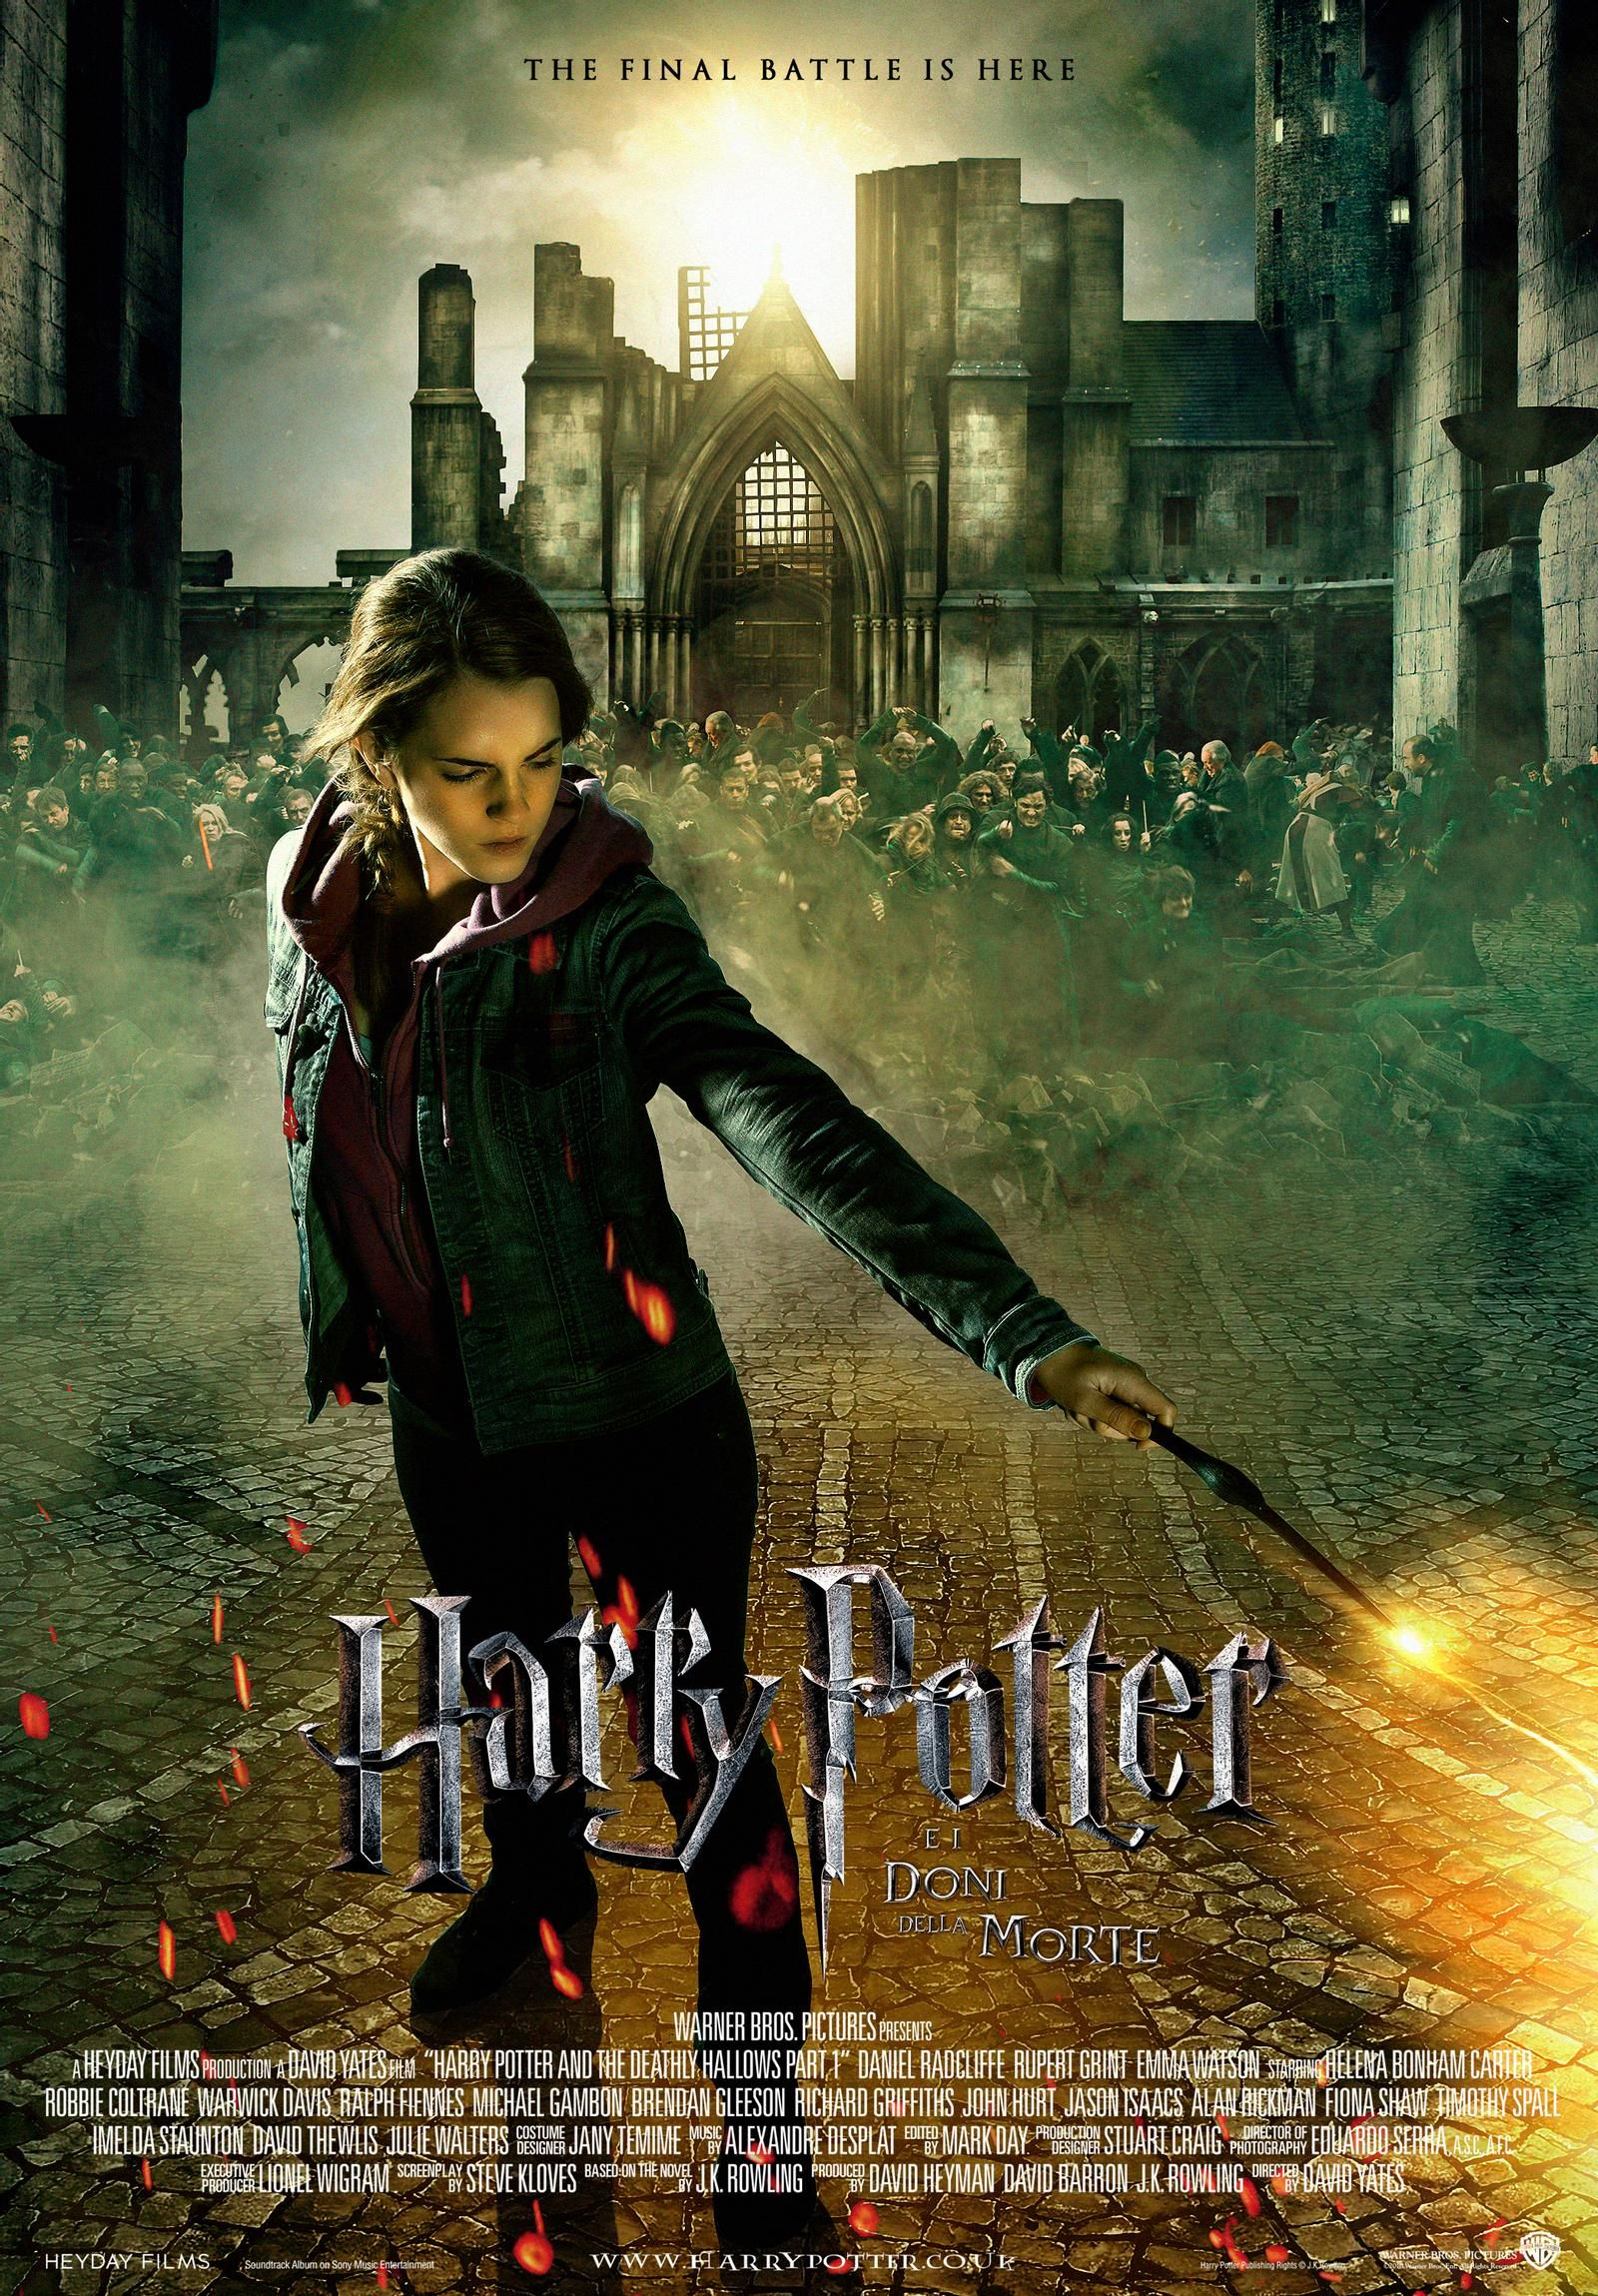 Fantasy Poster Harry Potter 7 With Hermione By Hogwartsite On Deviantart Harry Potter Ron Weasley Harry Potter Hermione Harry Potter Ron